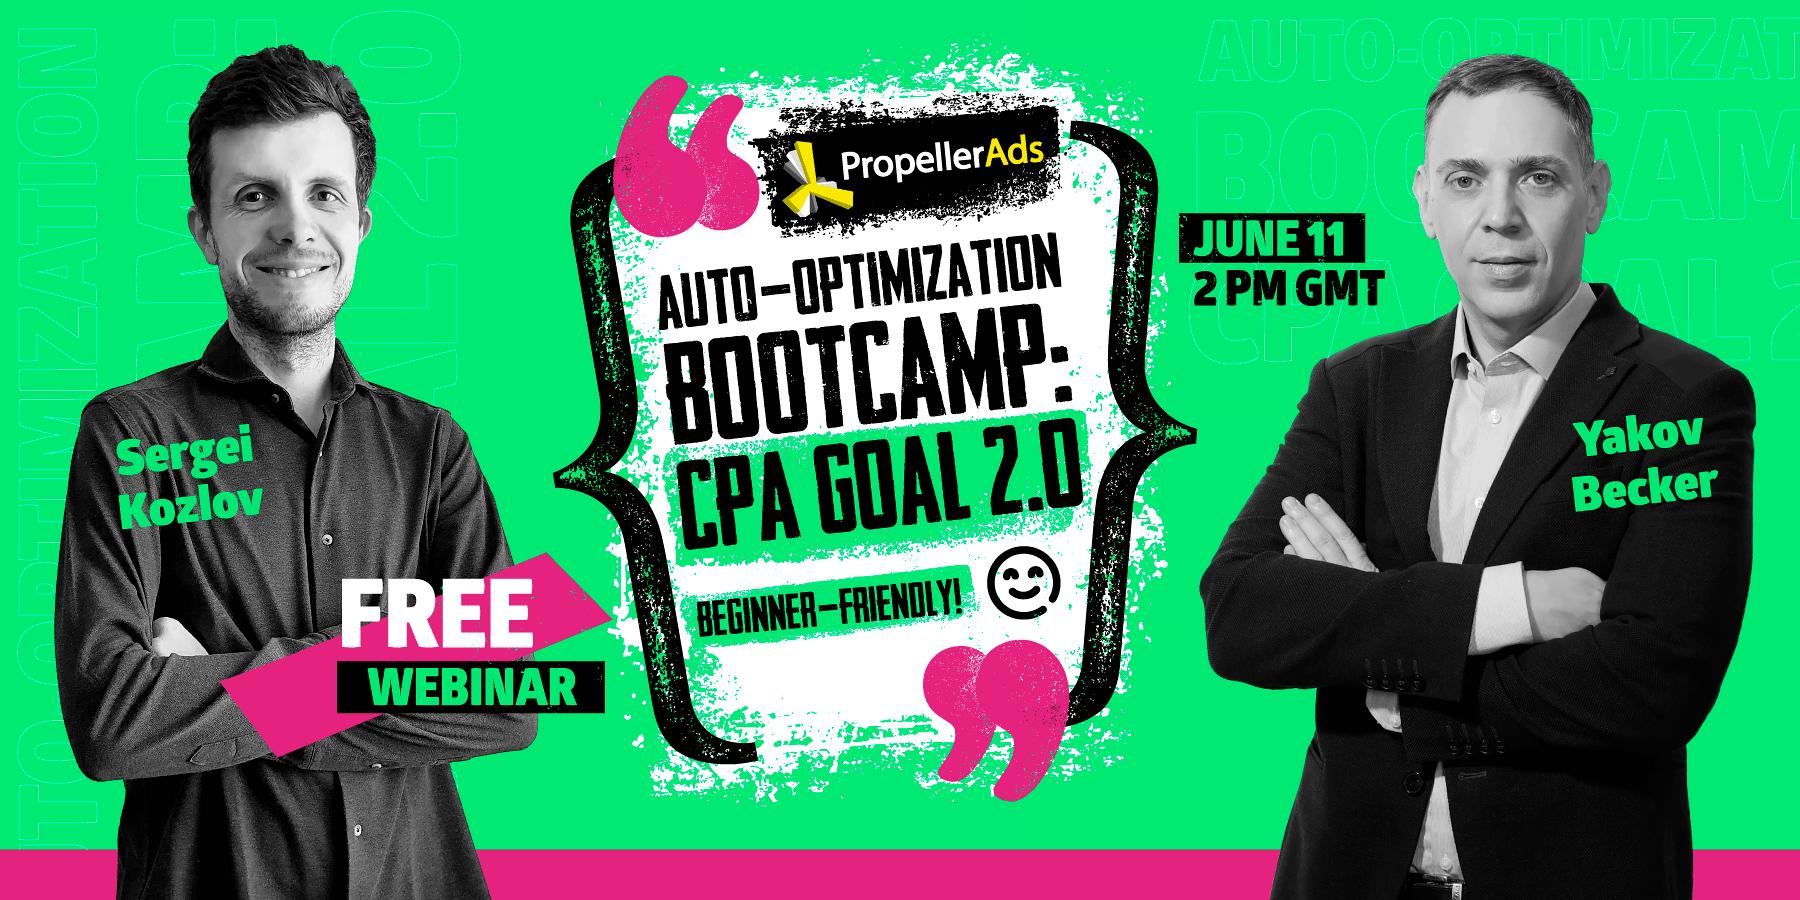 Auto-Optimization Bootcamp: CPA Goal 2.0